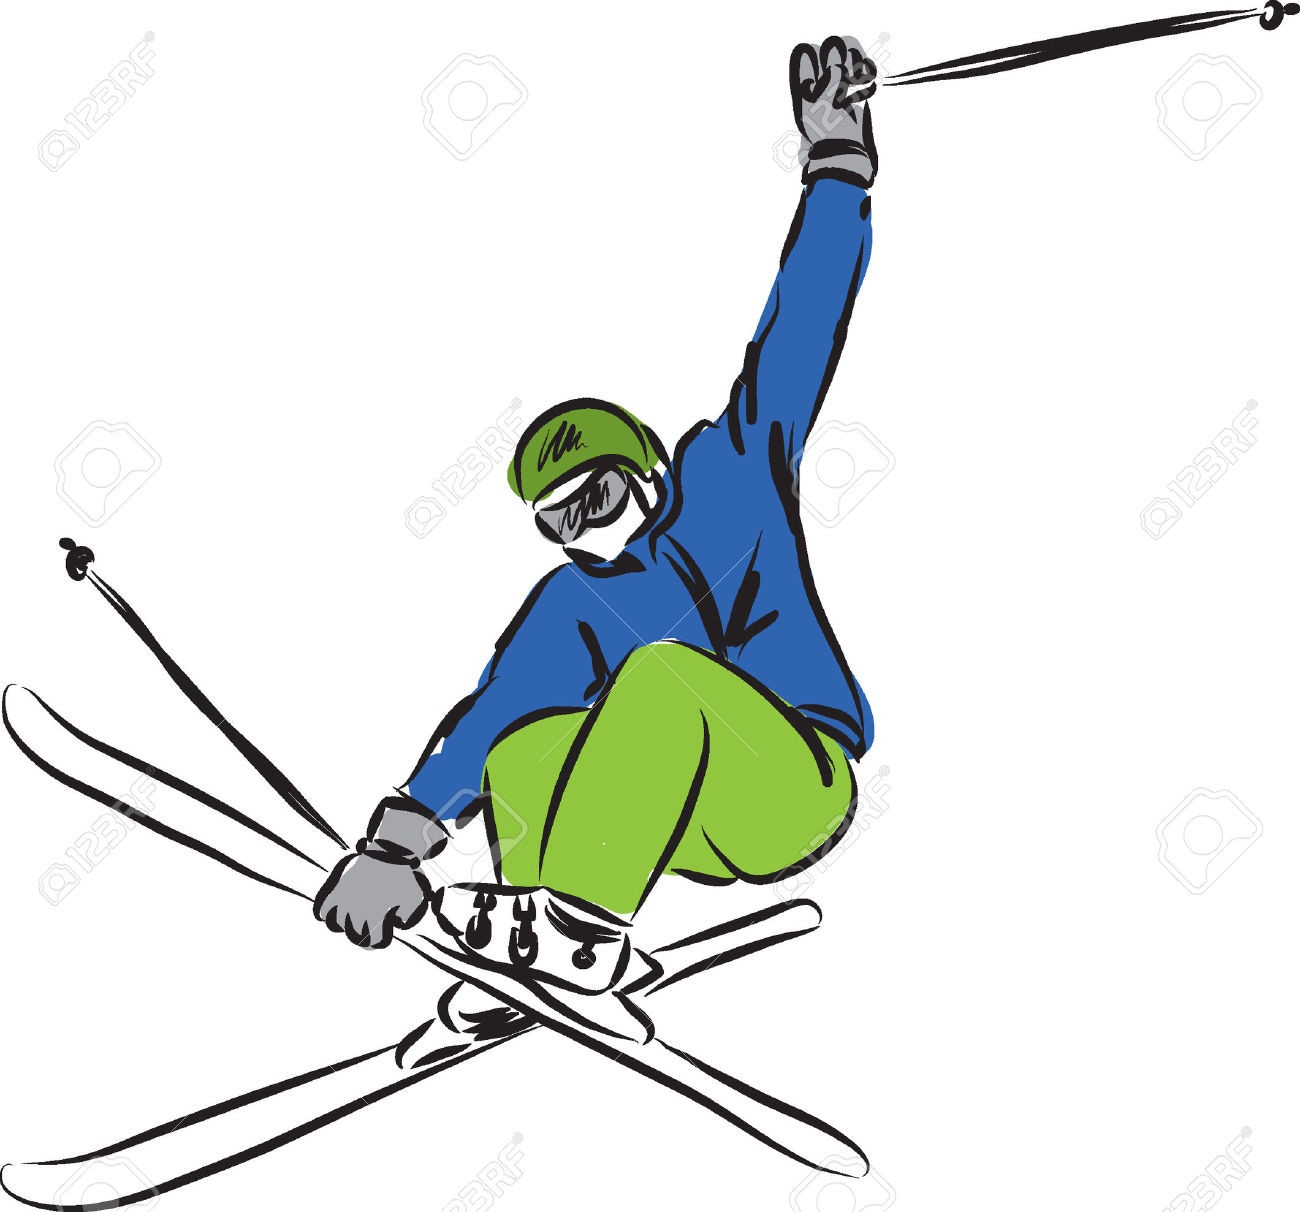 ski jump clipart clipground winter olympics clip art free winter olympics clip art images